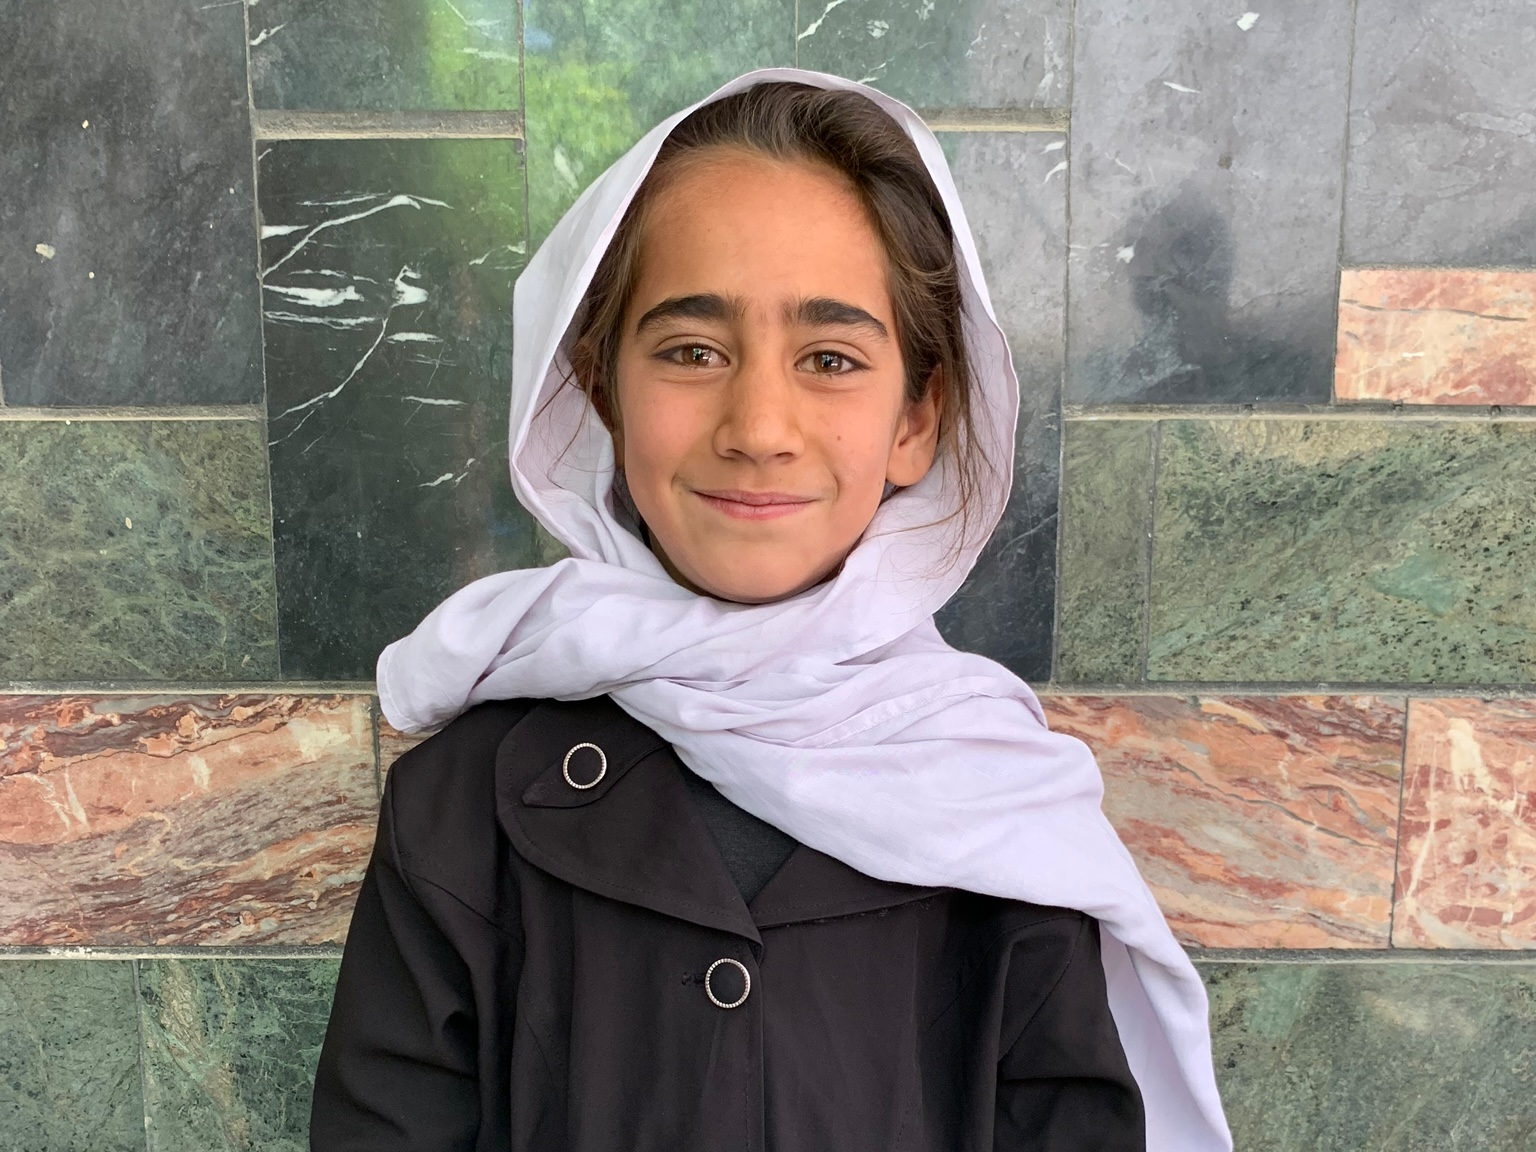 Hozra, Age 8 - Hozra has 9 siblings. Her mother does not have work at this time. Her father is a delivery man.BE HOZRA'S PARTNER>